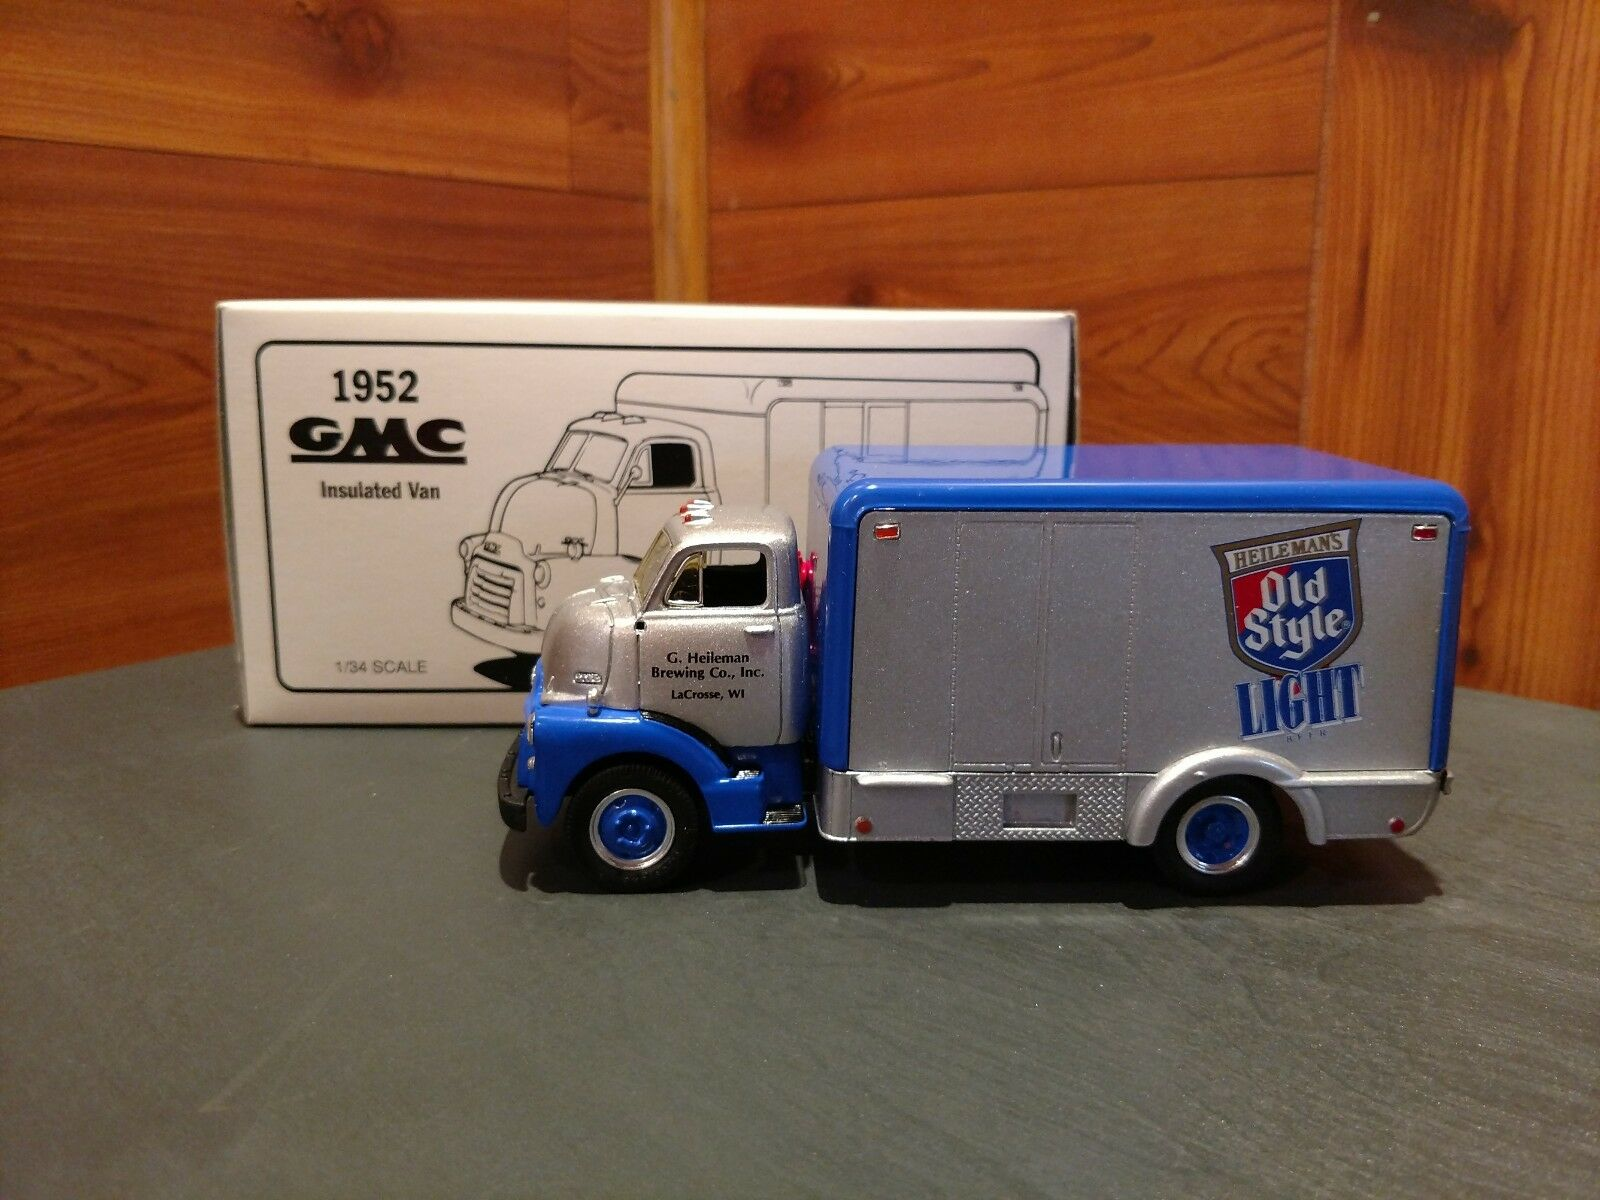 1 34 SCALE FIRST GEAR 1952 GMC G. HEILEMAN BREWING CO. INSULATED DELIVERY VAN